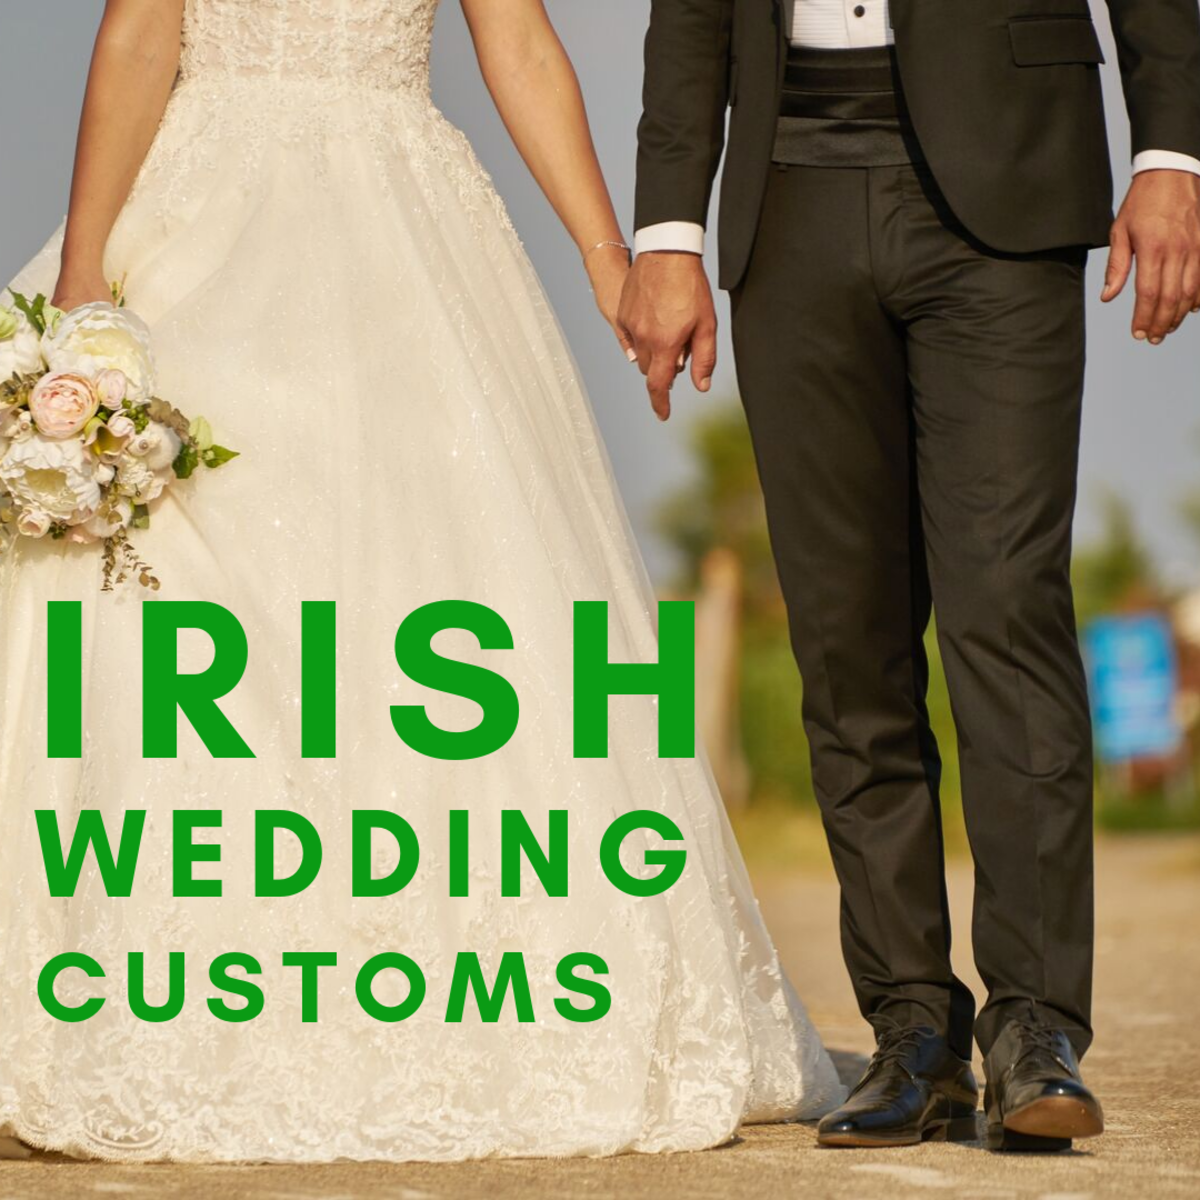 Irish Wedding Customs, Superstitions, and Lucky Traditions